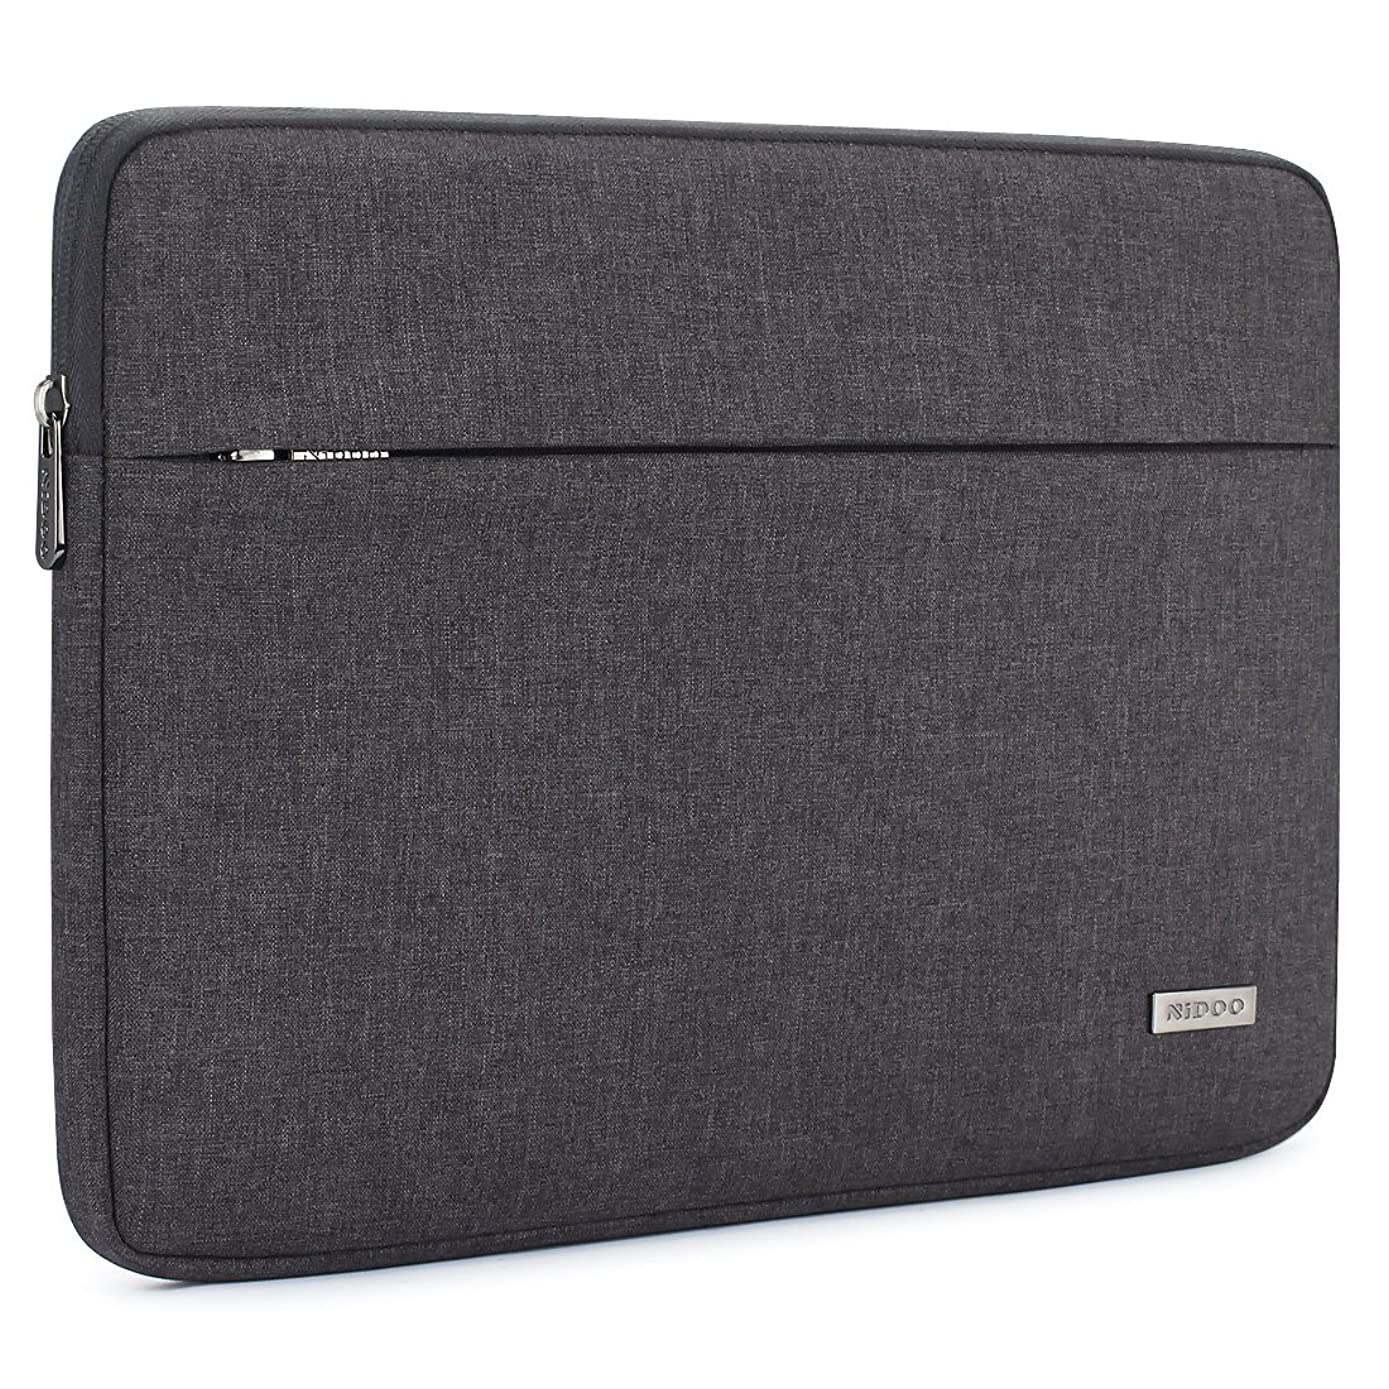 NIDOO 14 Inch Laptop Sleeve Case Water-Resistant Portable Computer Carrying Hand Bag Pouch for 13.5